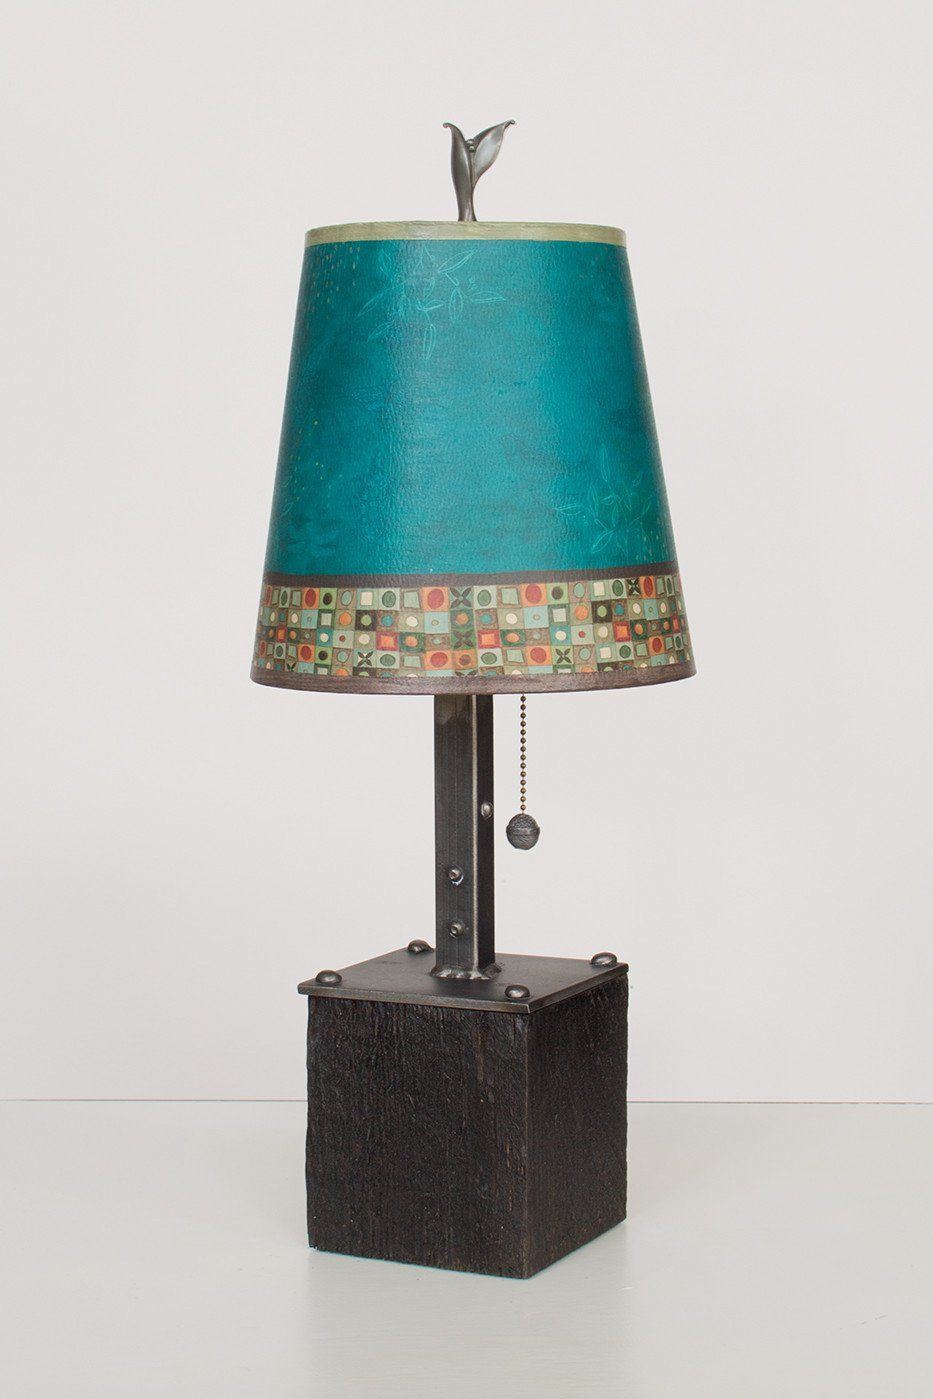 Steel Table Lamp on Reclaimed Wood with Small Drum Shade in Jade Mosaic Lit